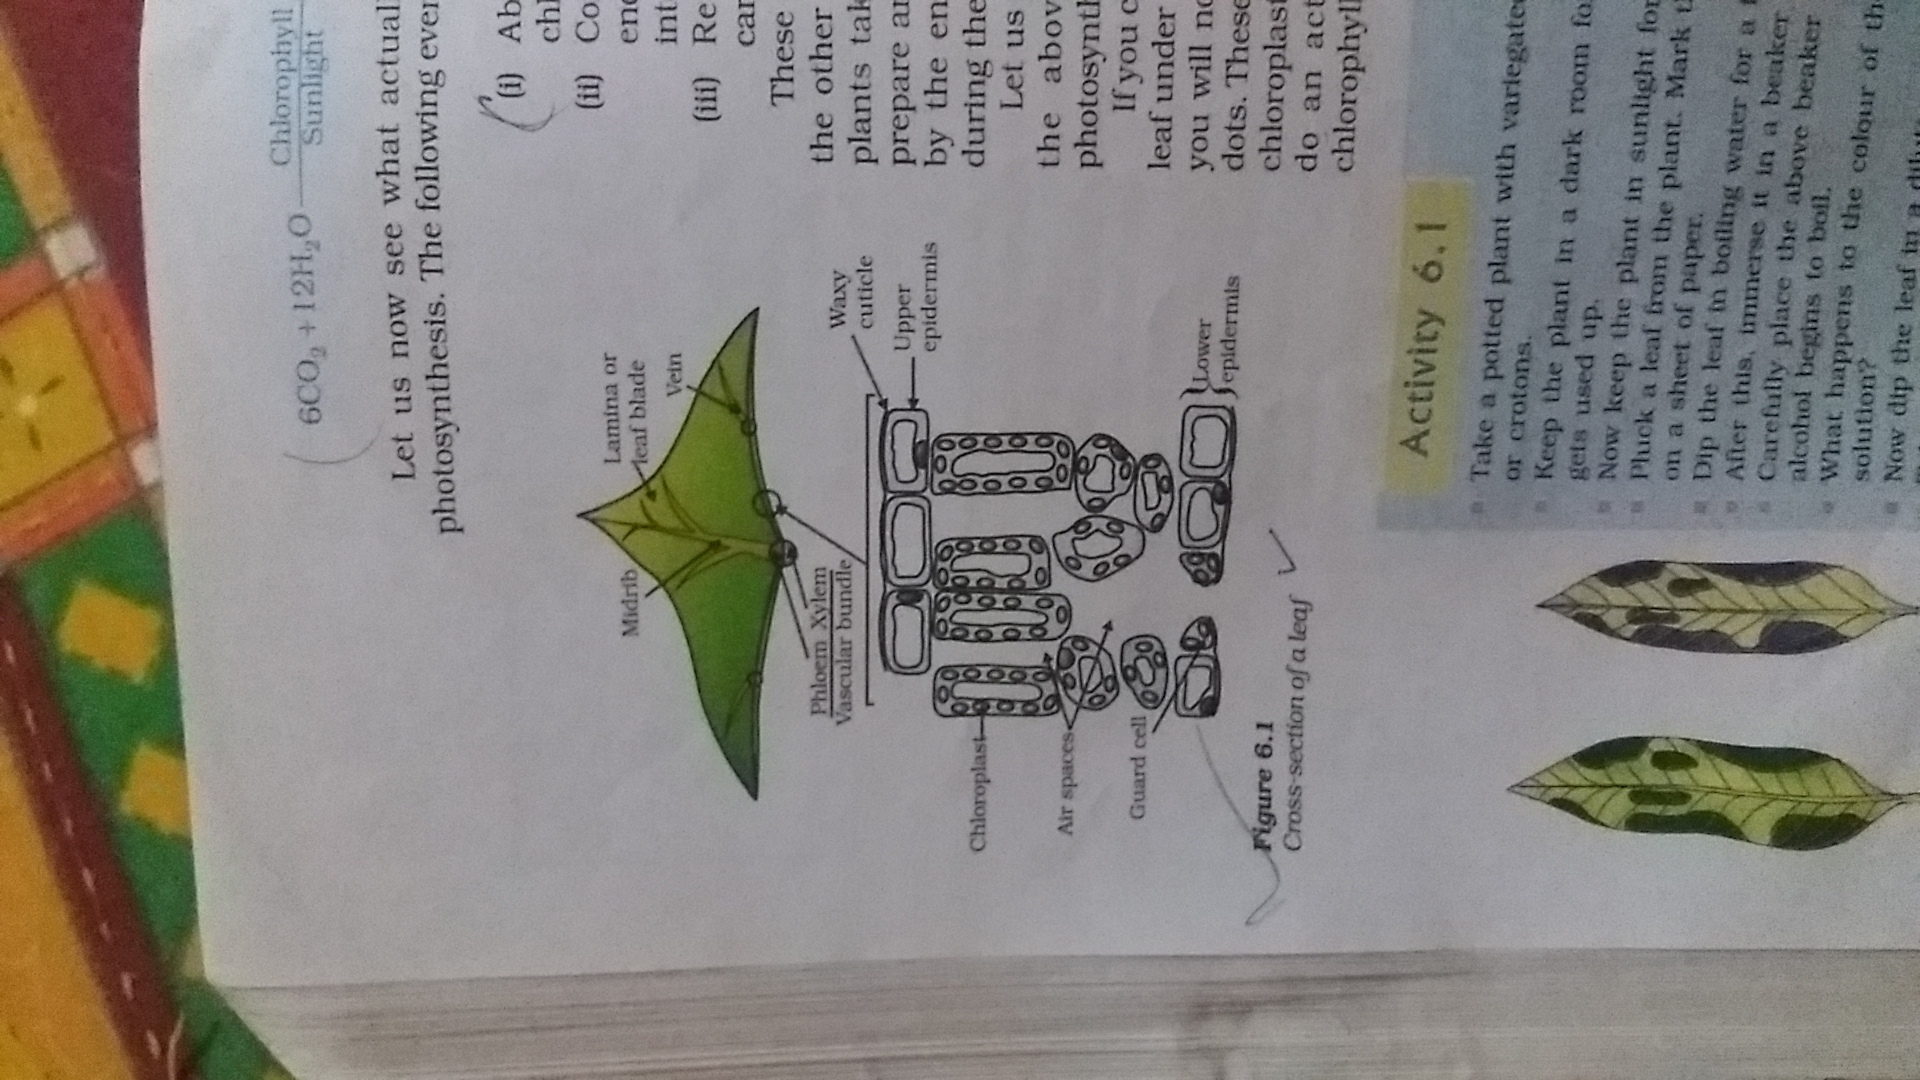 Draw A Diagrm Showing Cross Section Of Leaf And Label On